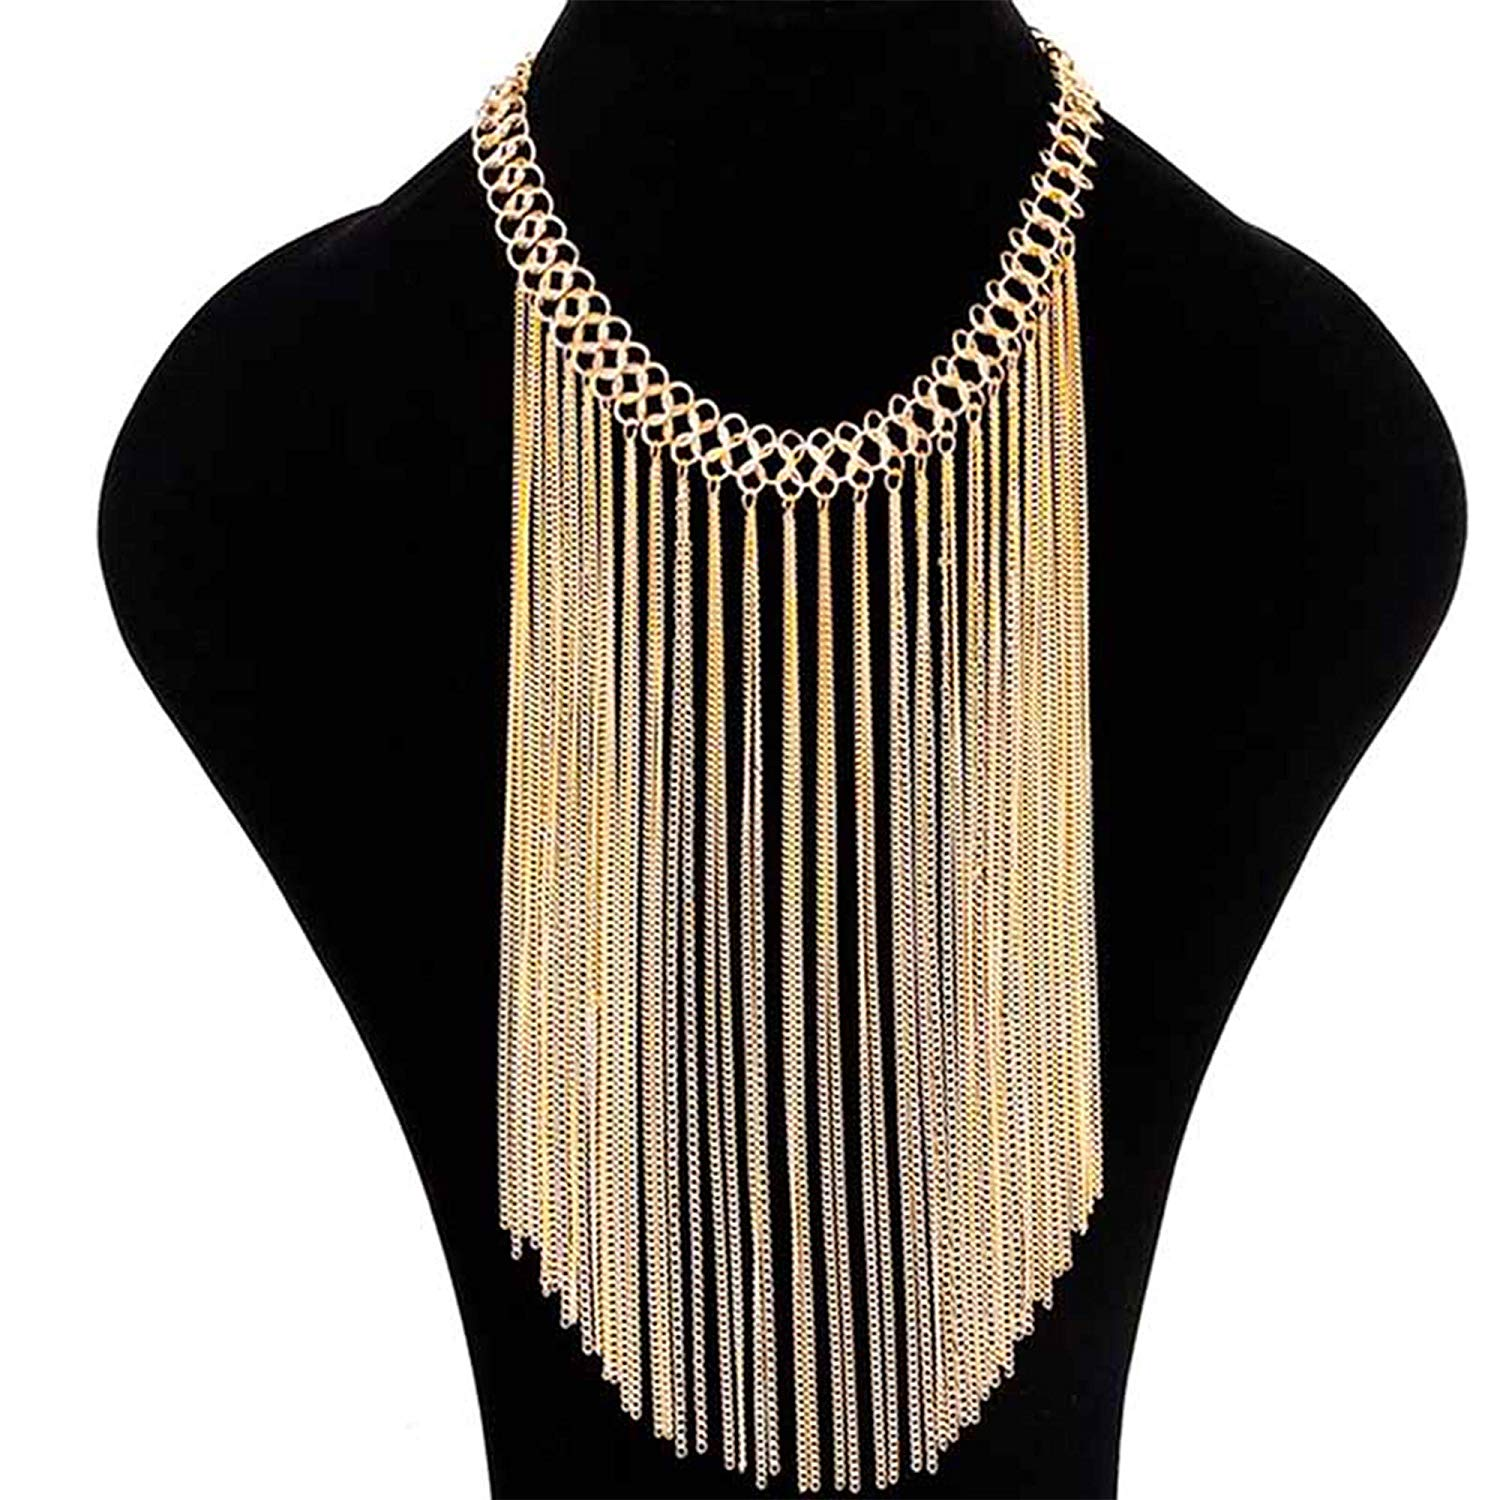 81Ke5cKxVsL._UL1500_ Gold Multi Layered Drop Dangle Long Chain Tassel Statement Necklace for Women